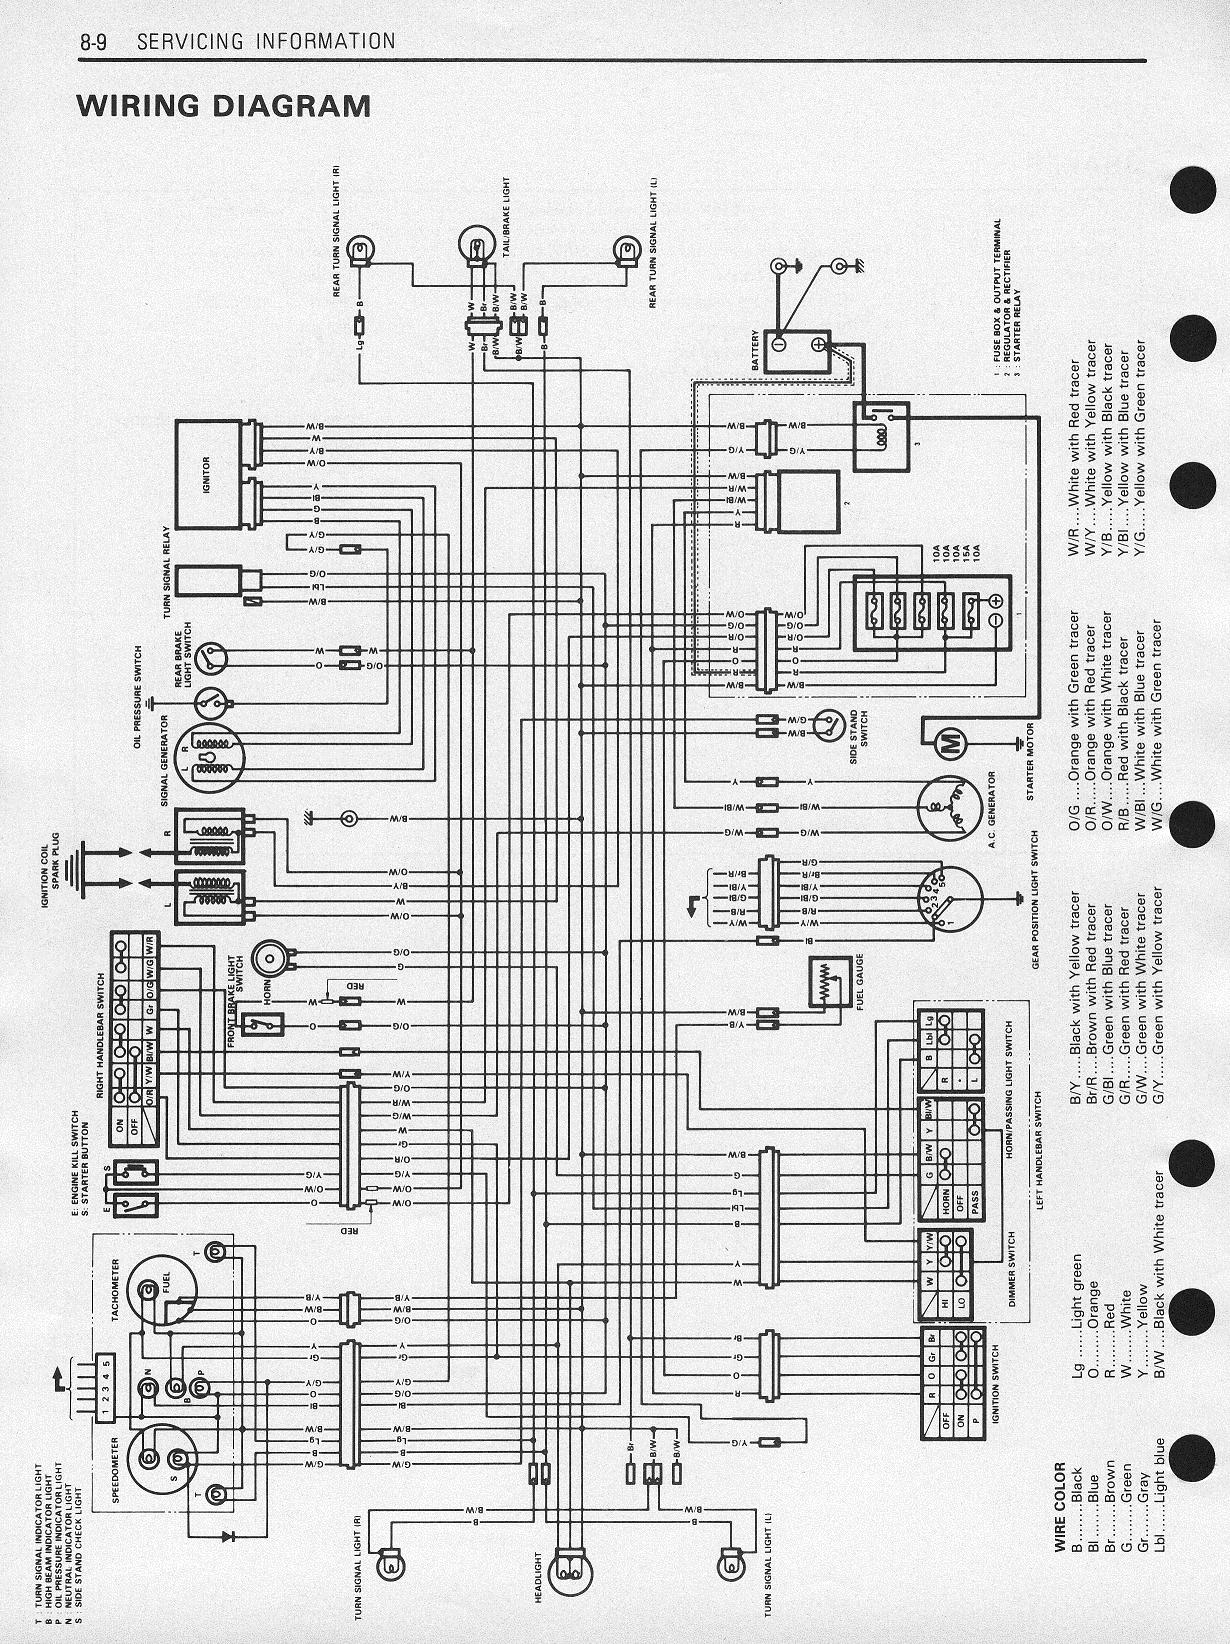 suzuki savage 650 carburetor diagram wiring diagrams for three way switches with multiple lights gr all